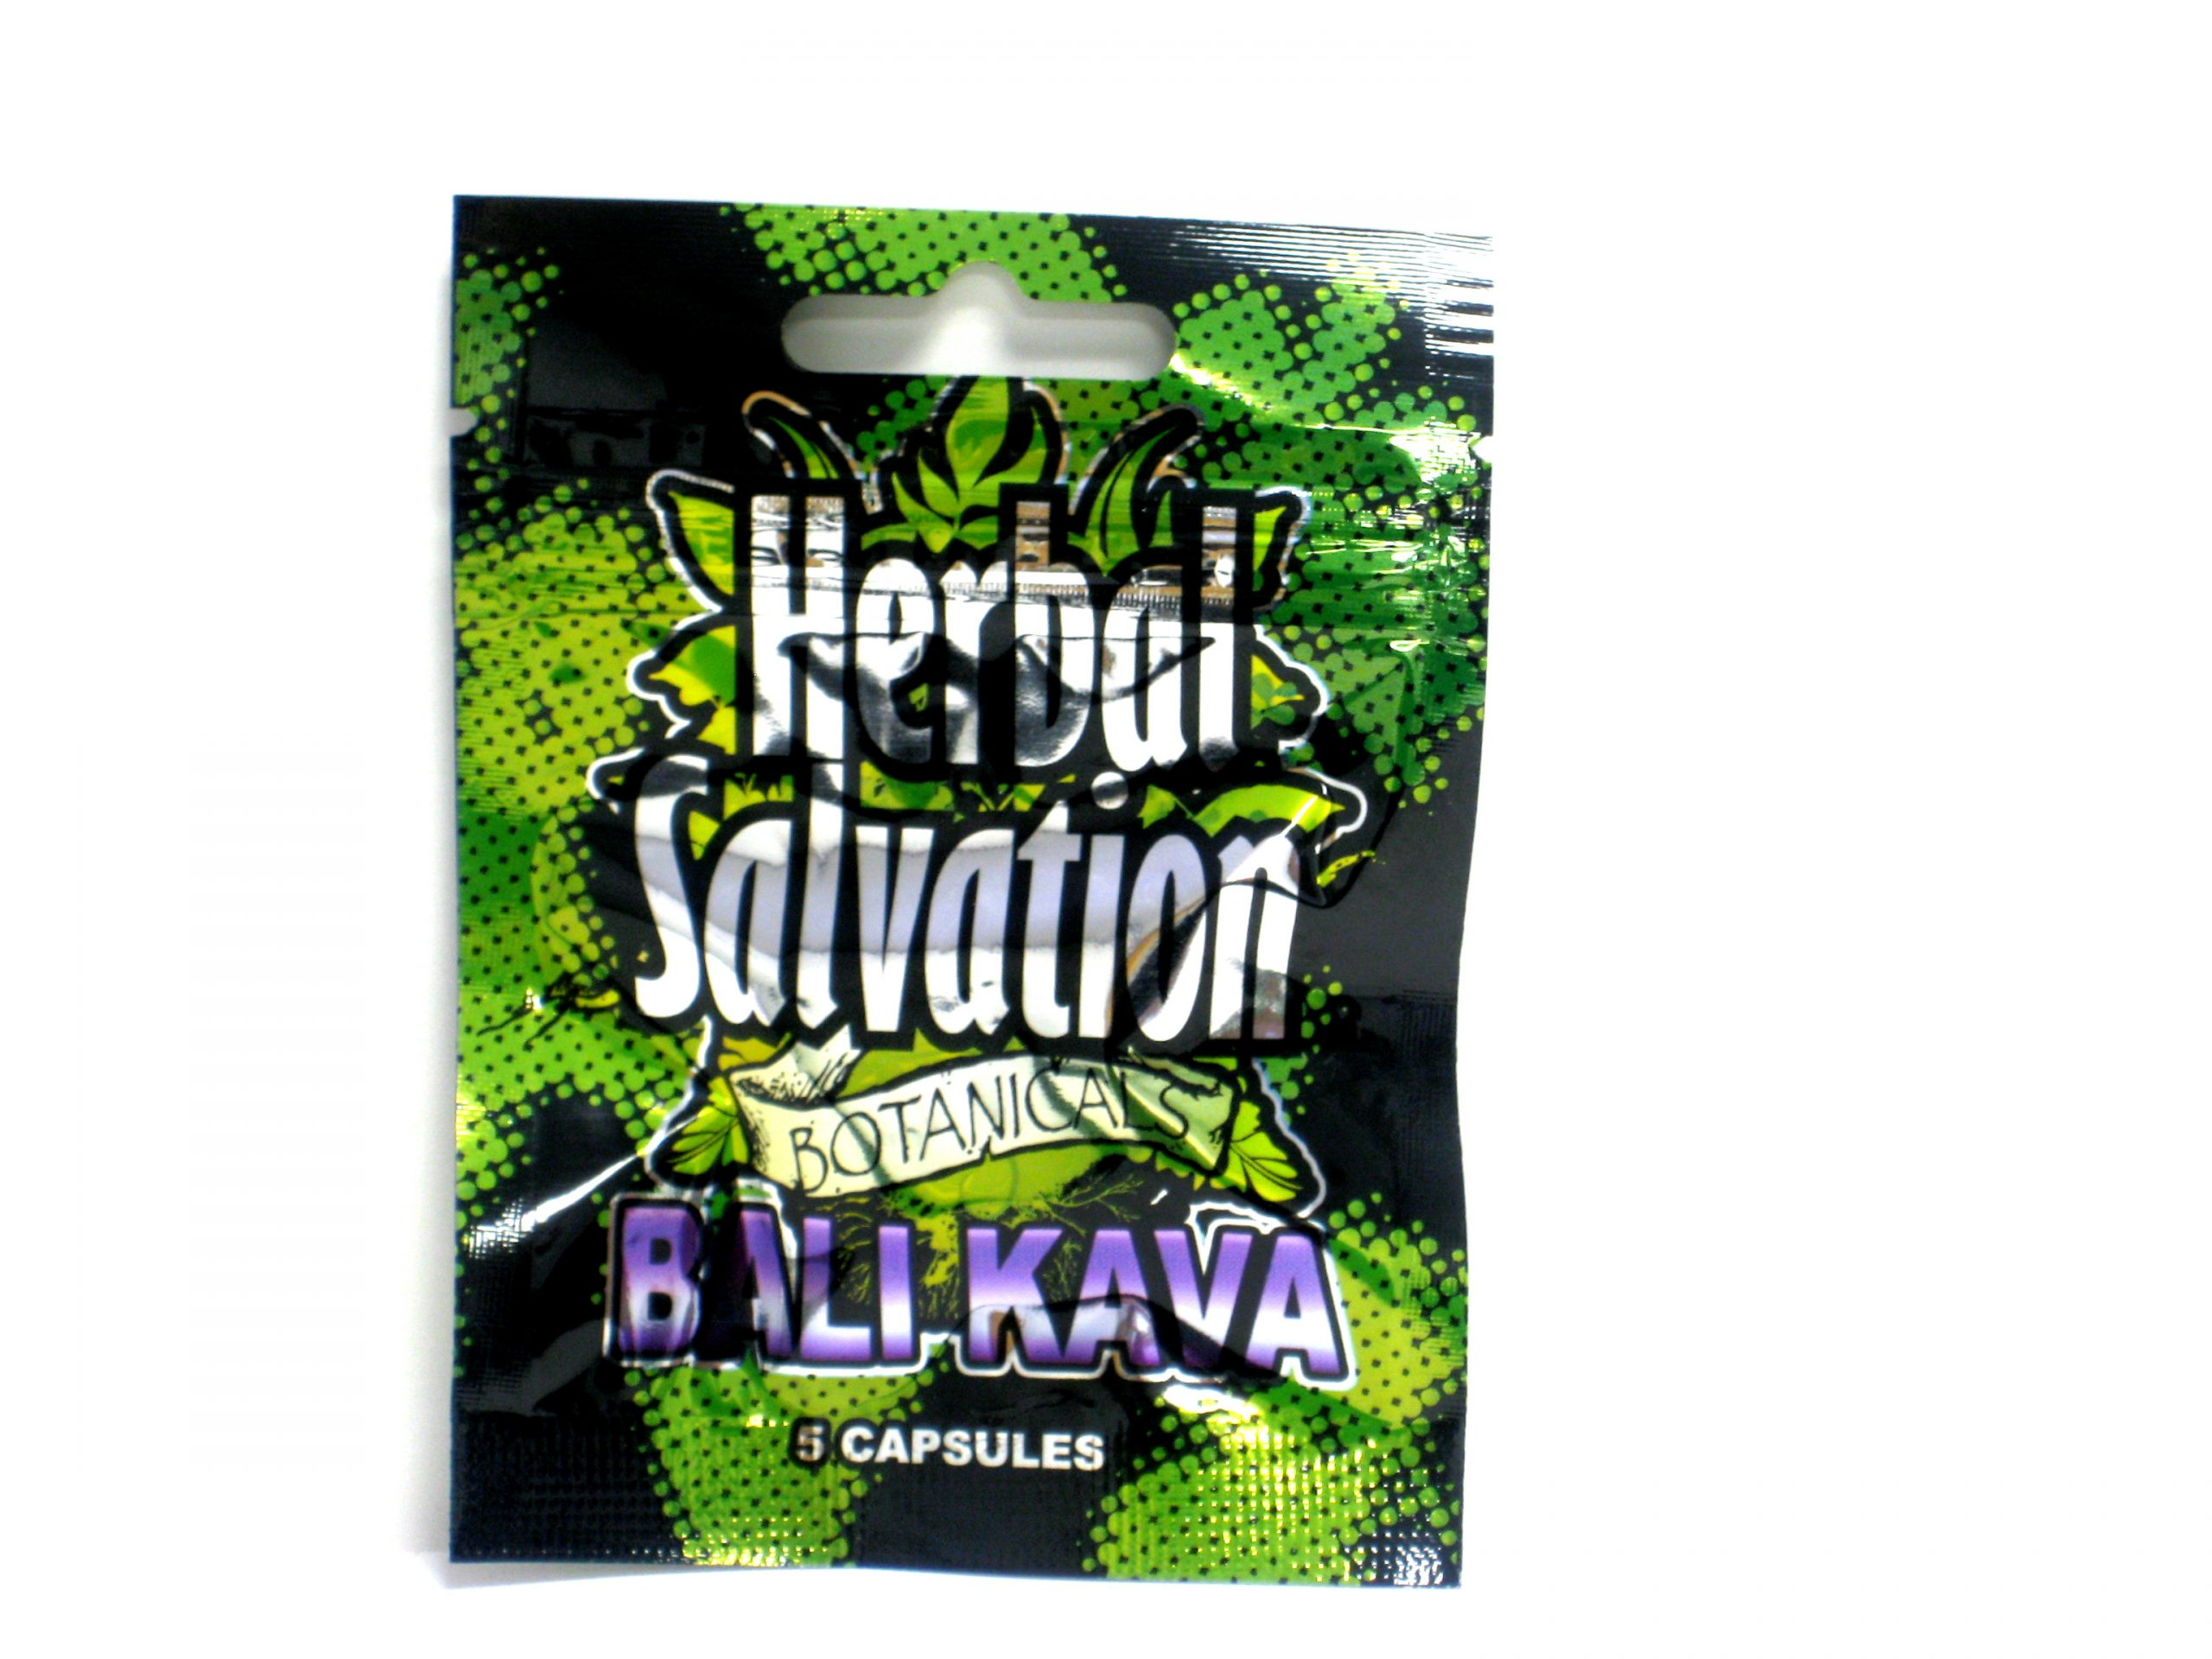 Herbal Salvation Bali Kava- 5 capsules